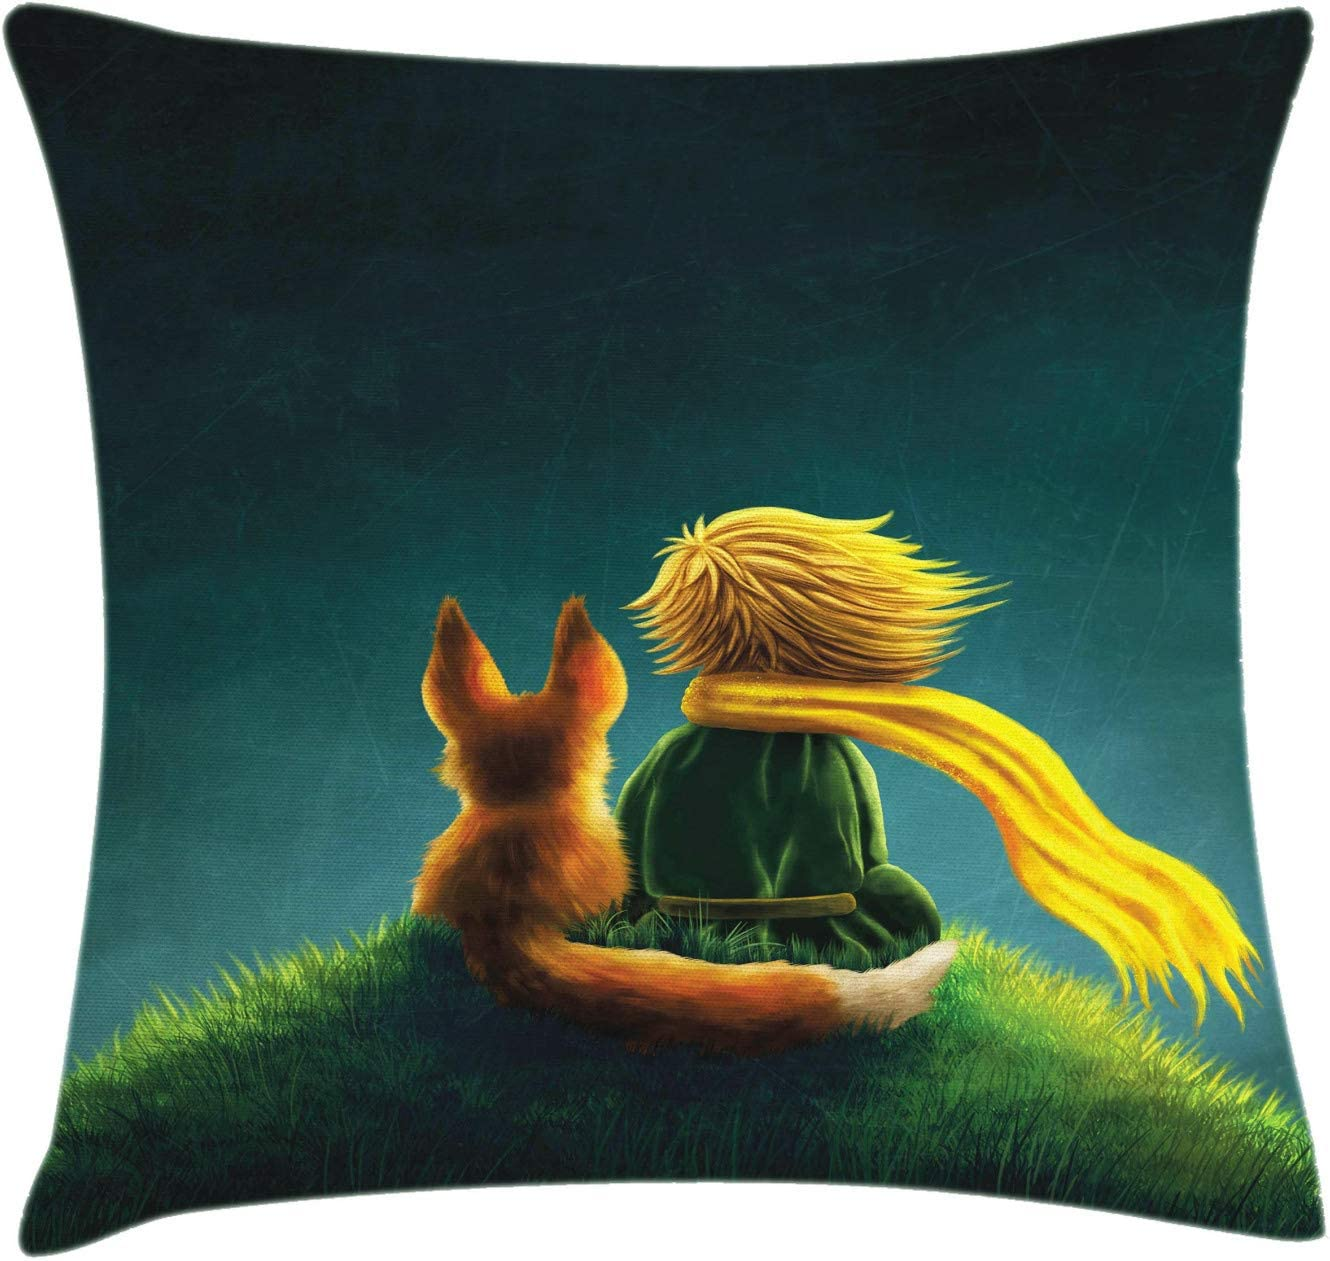 """Ambesonne Fantasy Throw Pillow Cushion Cover, Children Design Little Prince and The Fox Looking at The Sky Pattern, Decorative Square Accent Pillow Case, 16"""" X 16"""", Fern Green"""